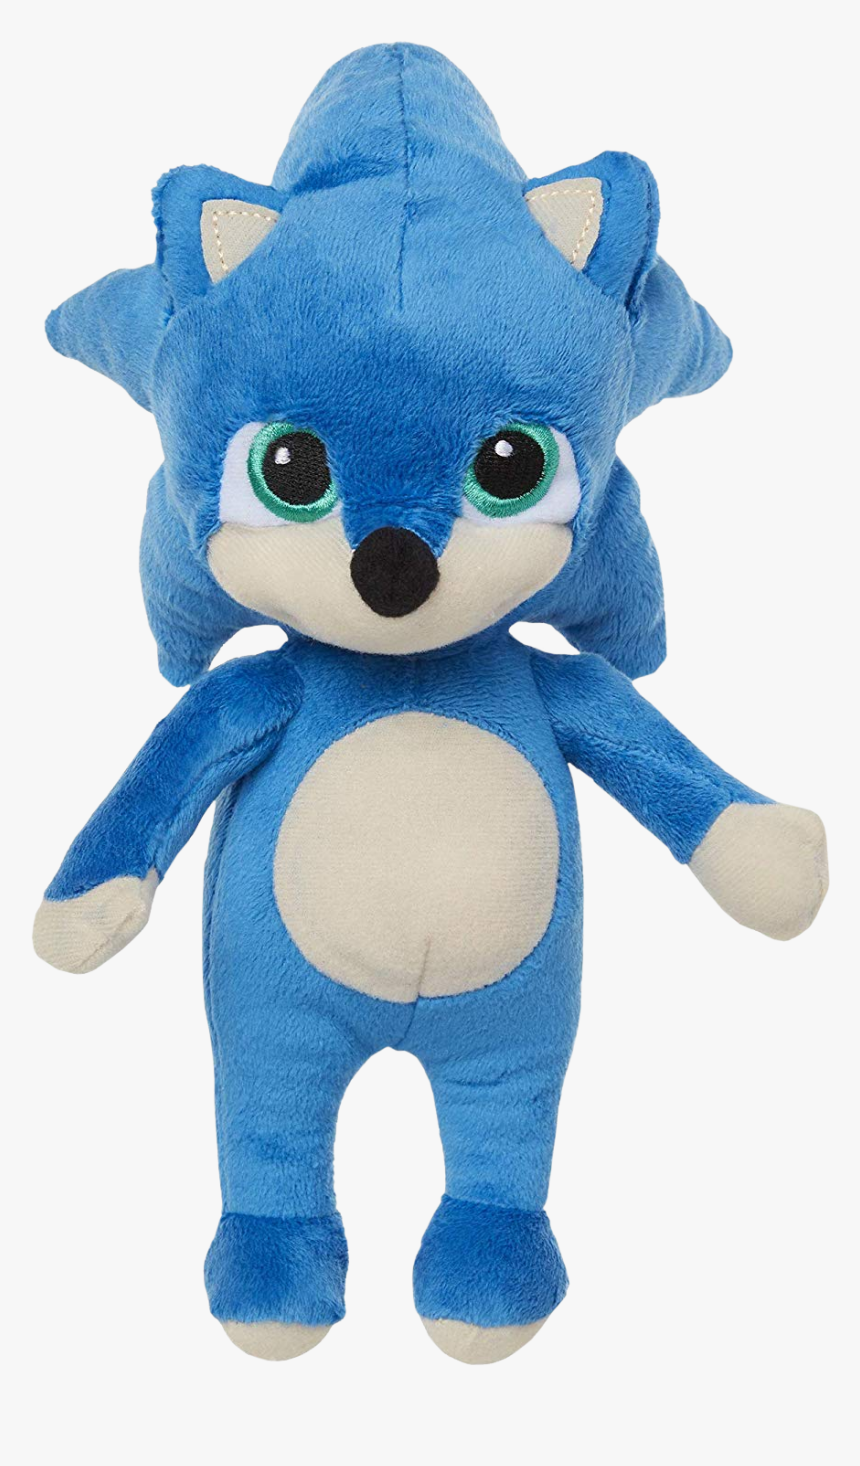 Sonic The Hedgehog Sonic Movie Baby Sonic Plush Hd Png Download Kindpng